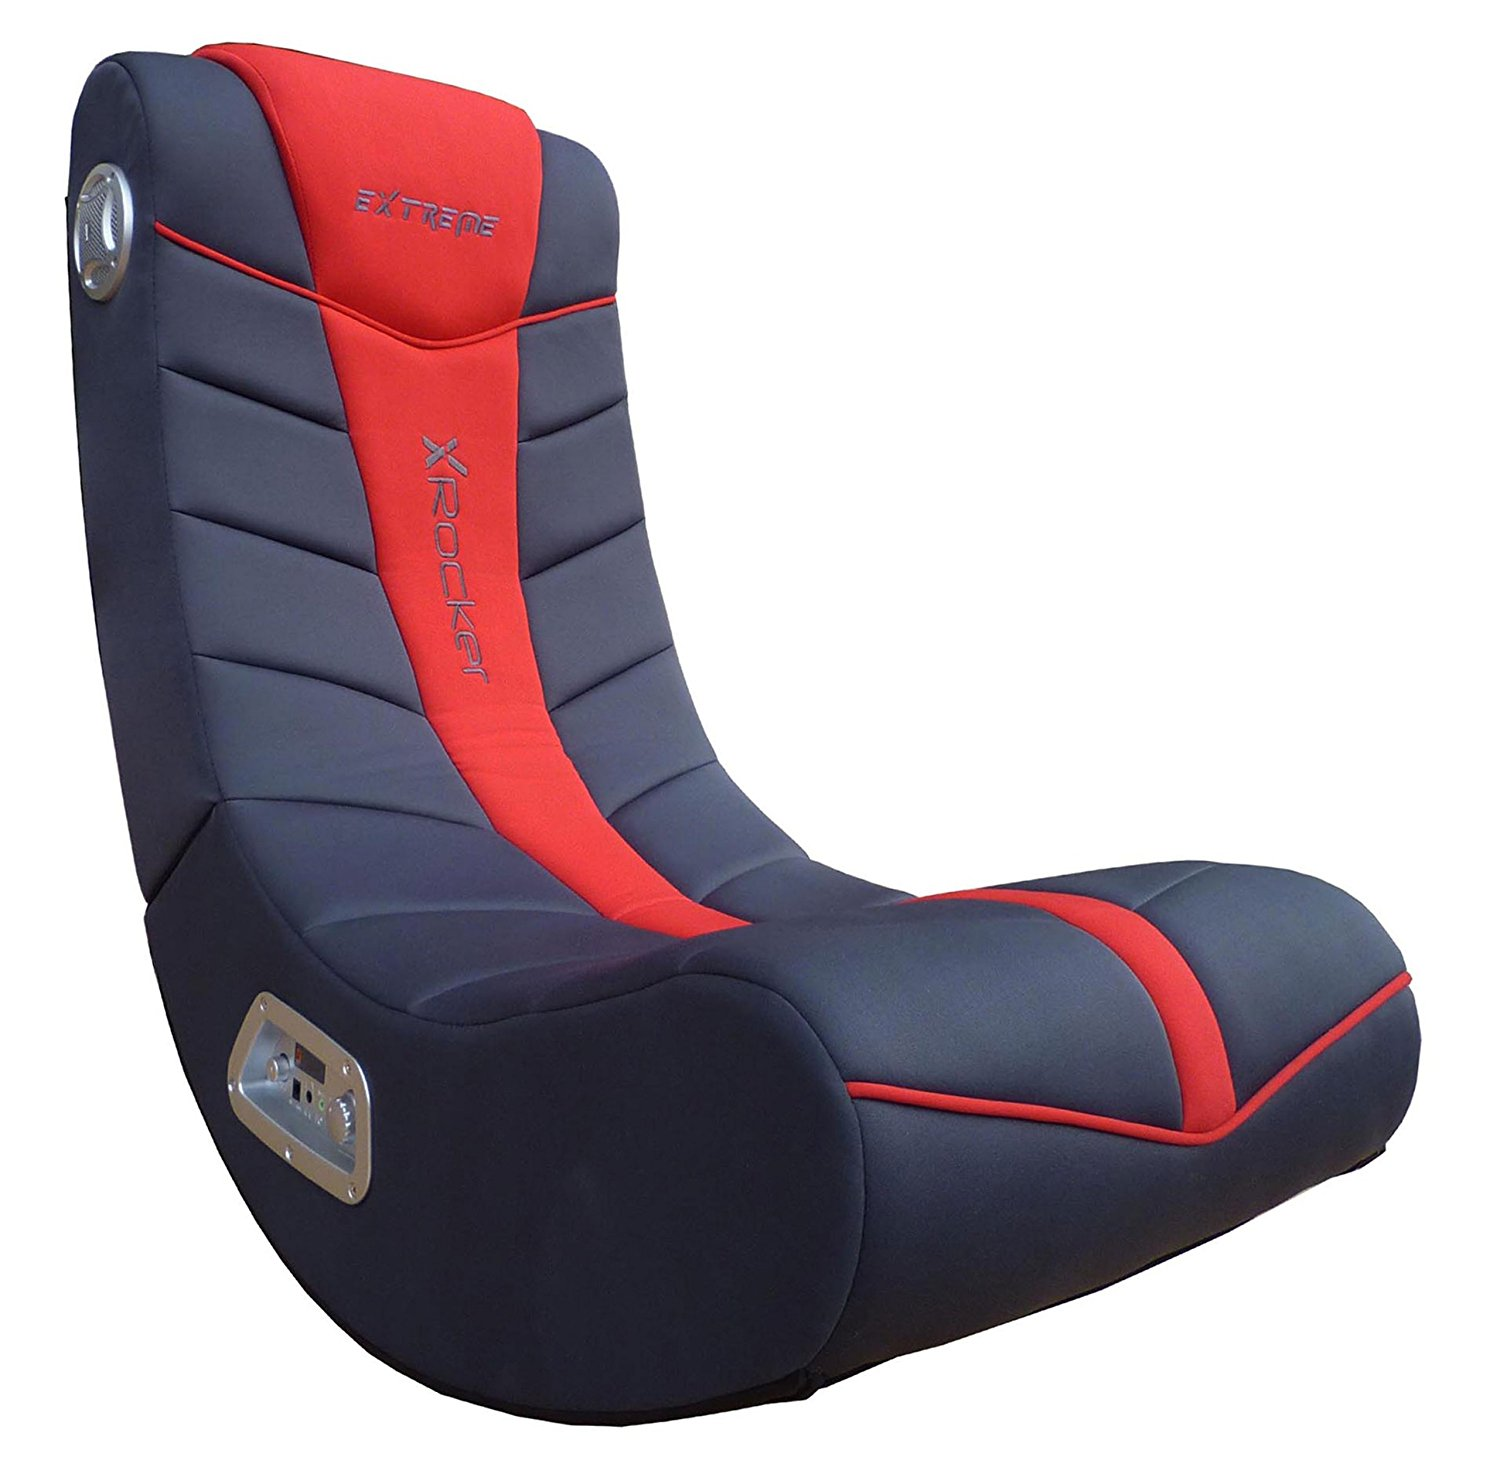 Gamer Chairs 10 Cheap Gaming Chairs Under 100 Gaming Chair Pro